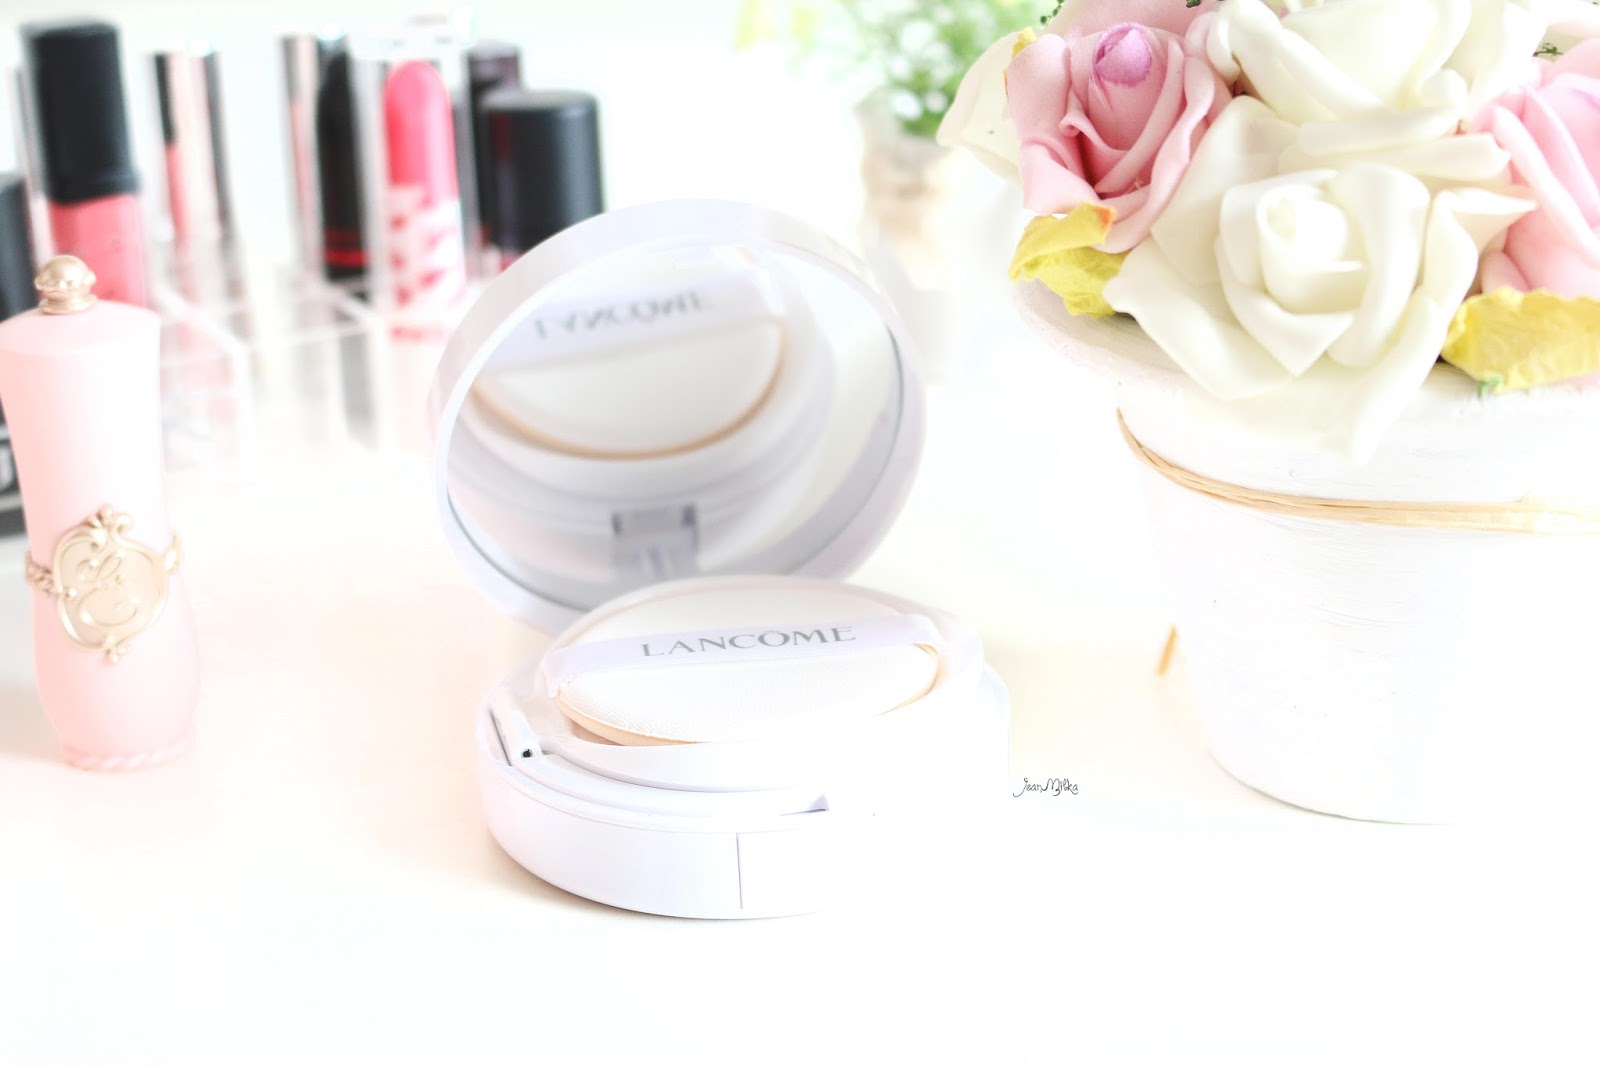 lancome, lancome miracle cushion, foundation, cushion, cushion foundation, review, swatch, limited edition, packaging, lancome, miracle cushion